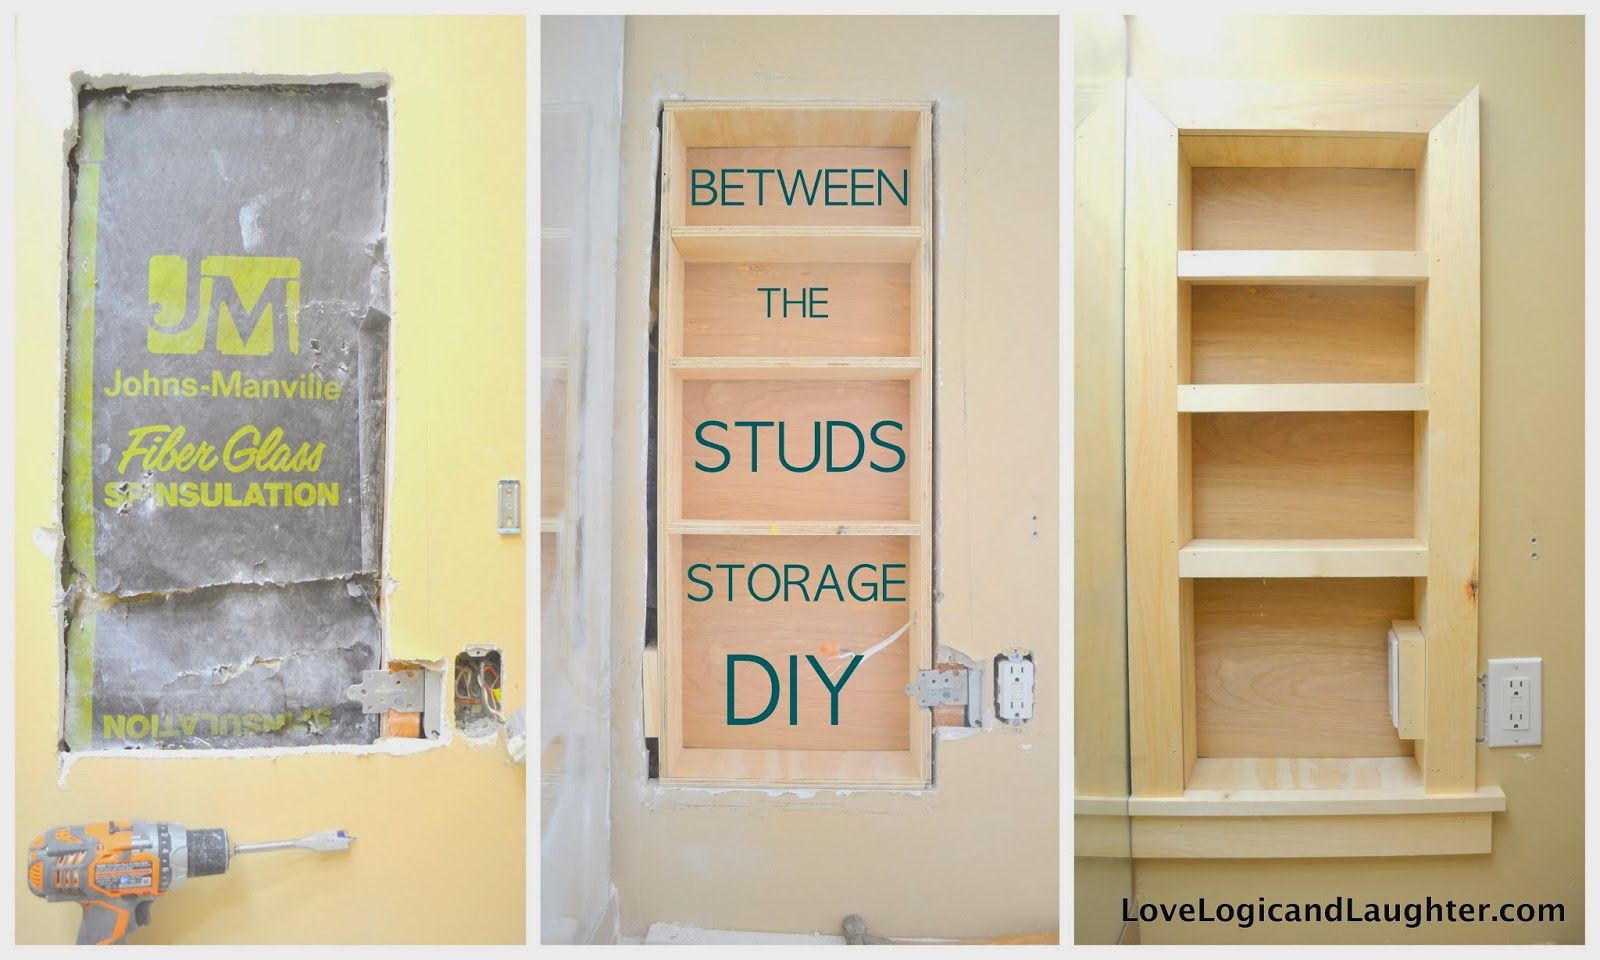 Built in bathroom wall storage - Between The Studs Storage A Tutorialusing Stair Tread Nosing As Finishing Trim On Built In Shelvesbetween The Studs Storage Adding More Storage To The